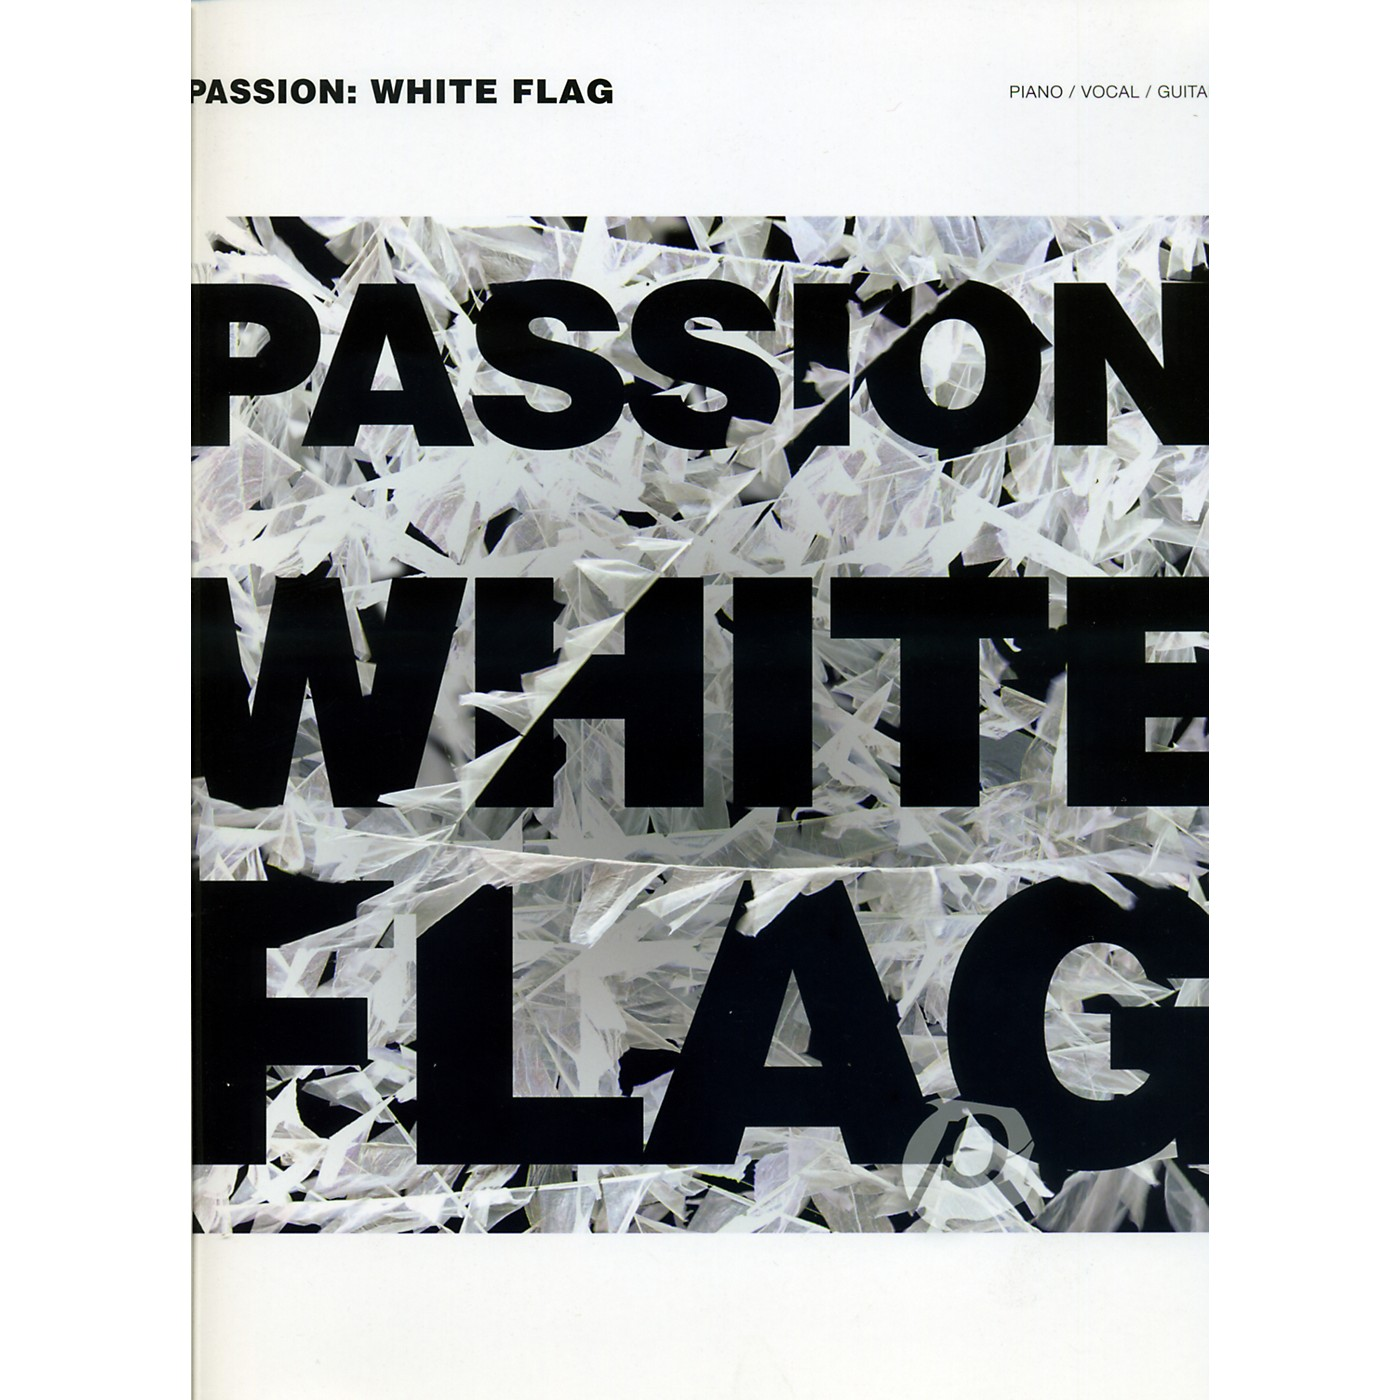 Hal Leonard Passion - White Flag Piano/Vocal/Guitar Songbook thumbnail